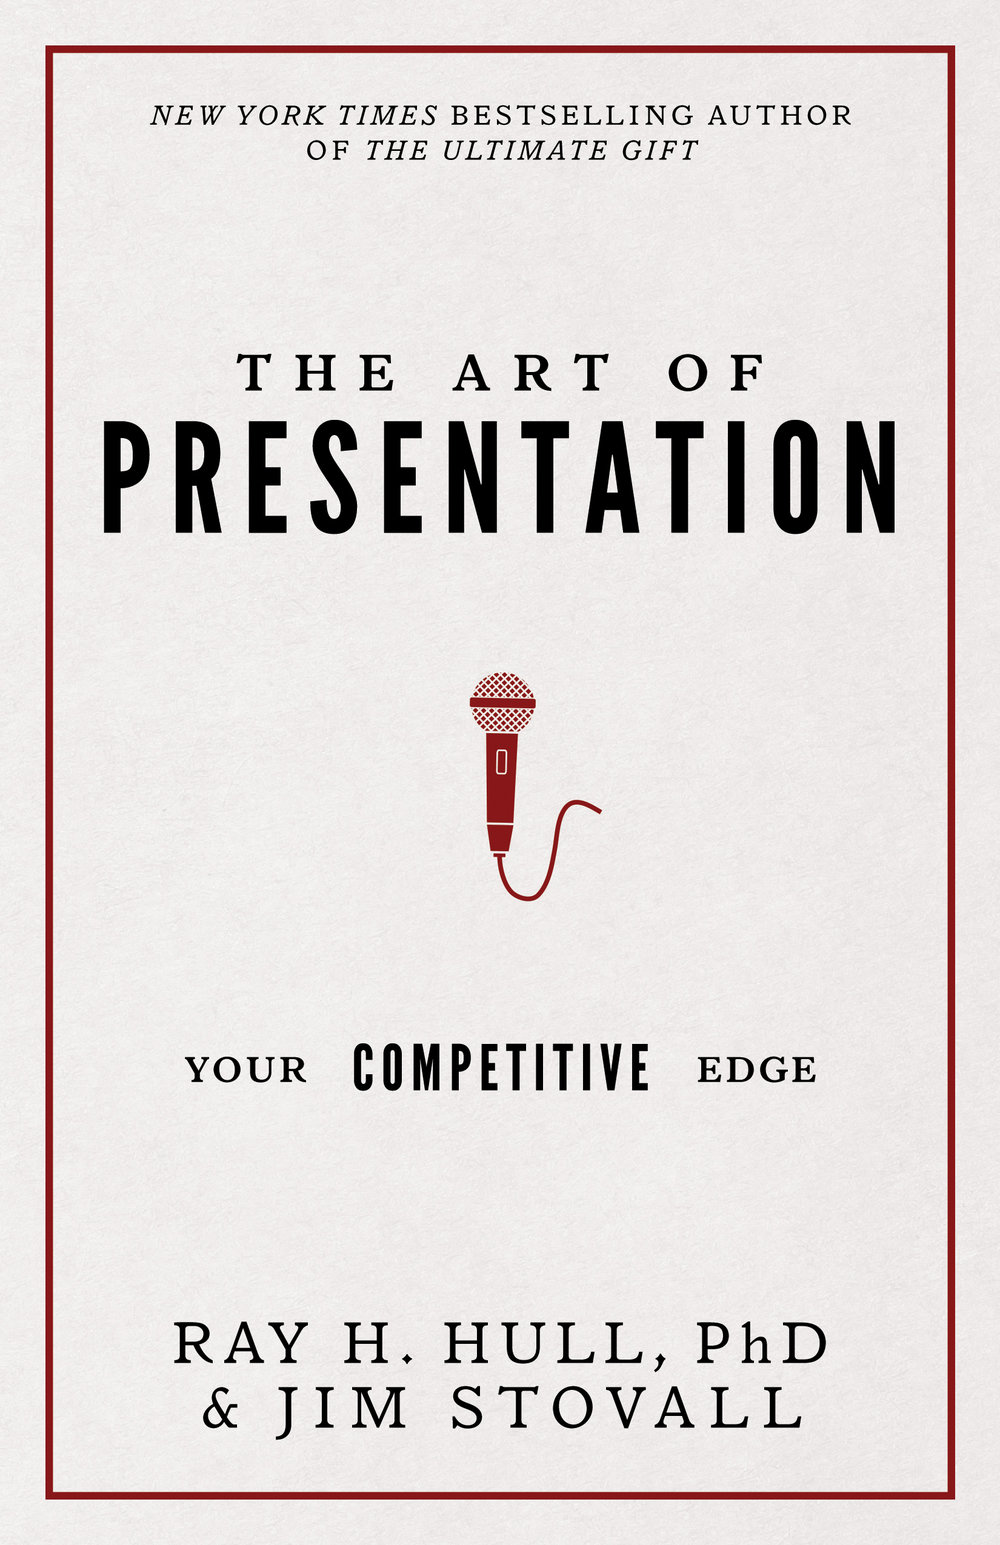 The Art of Presentation - Ray H. Hull, PHD and Jim Stovall